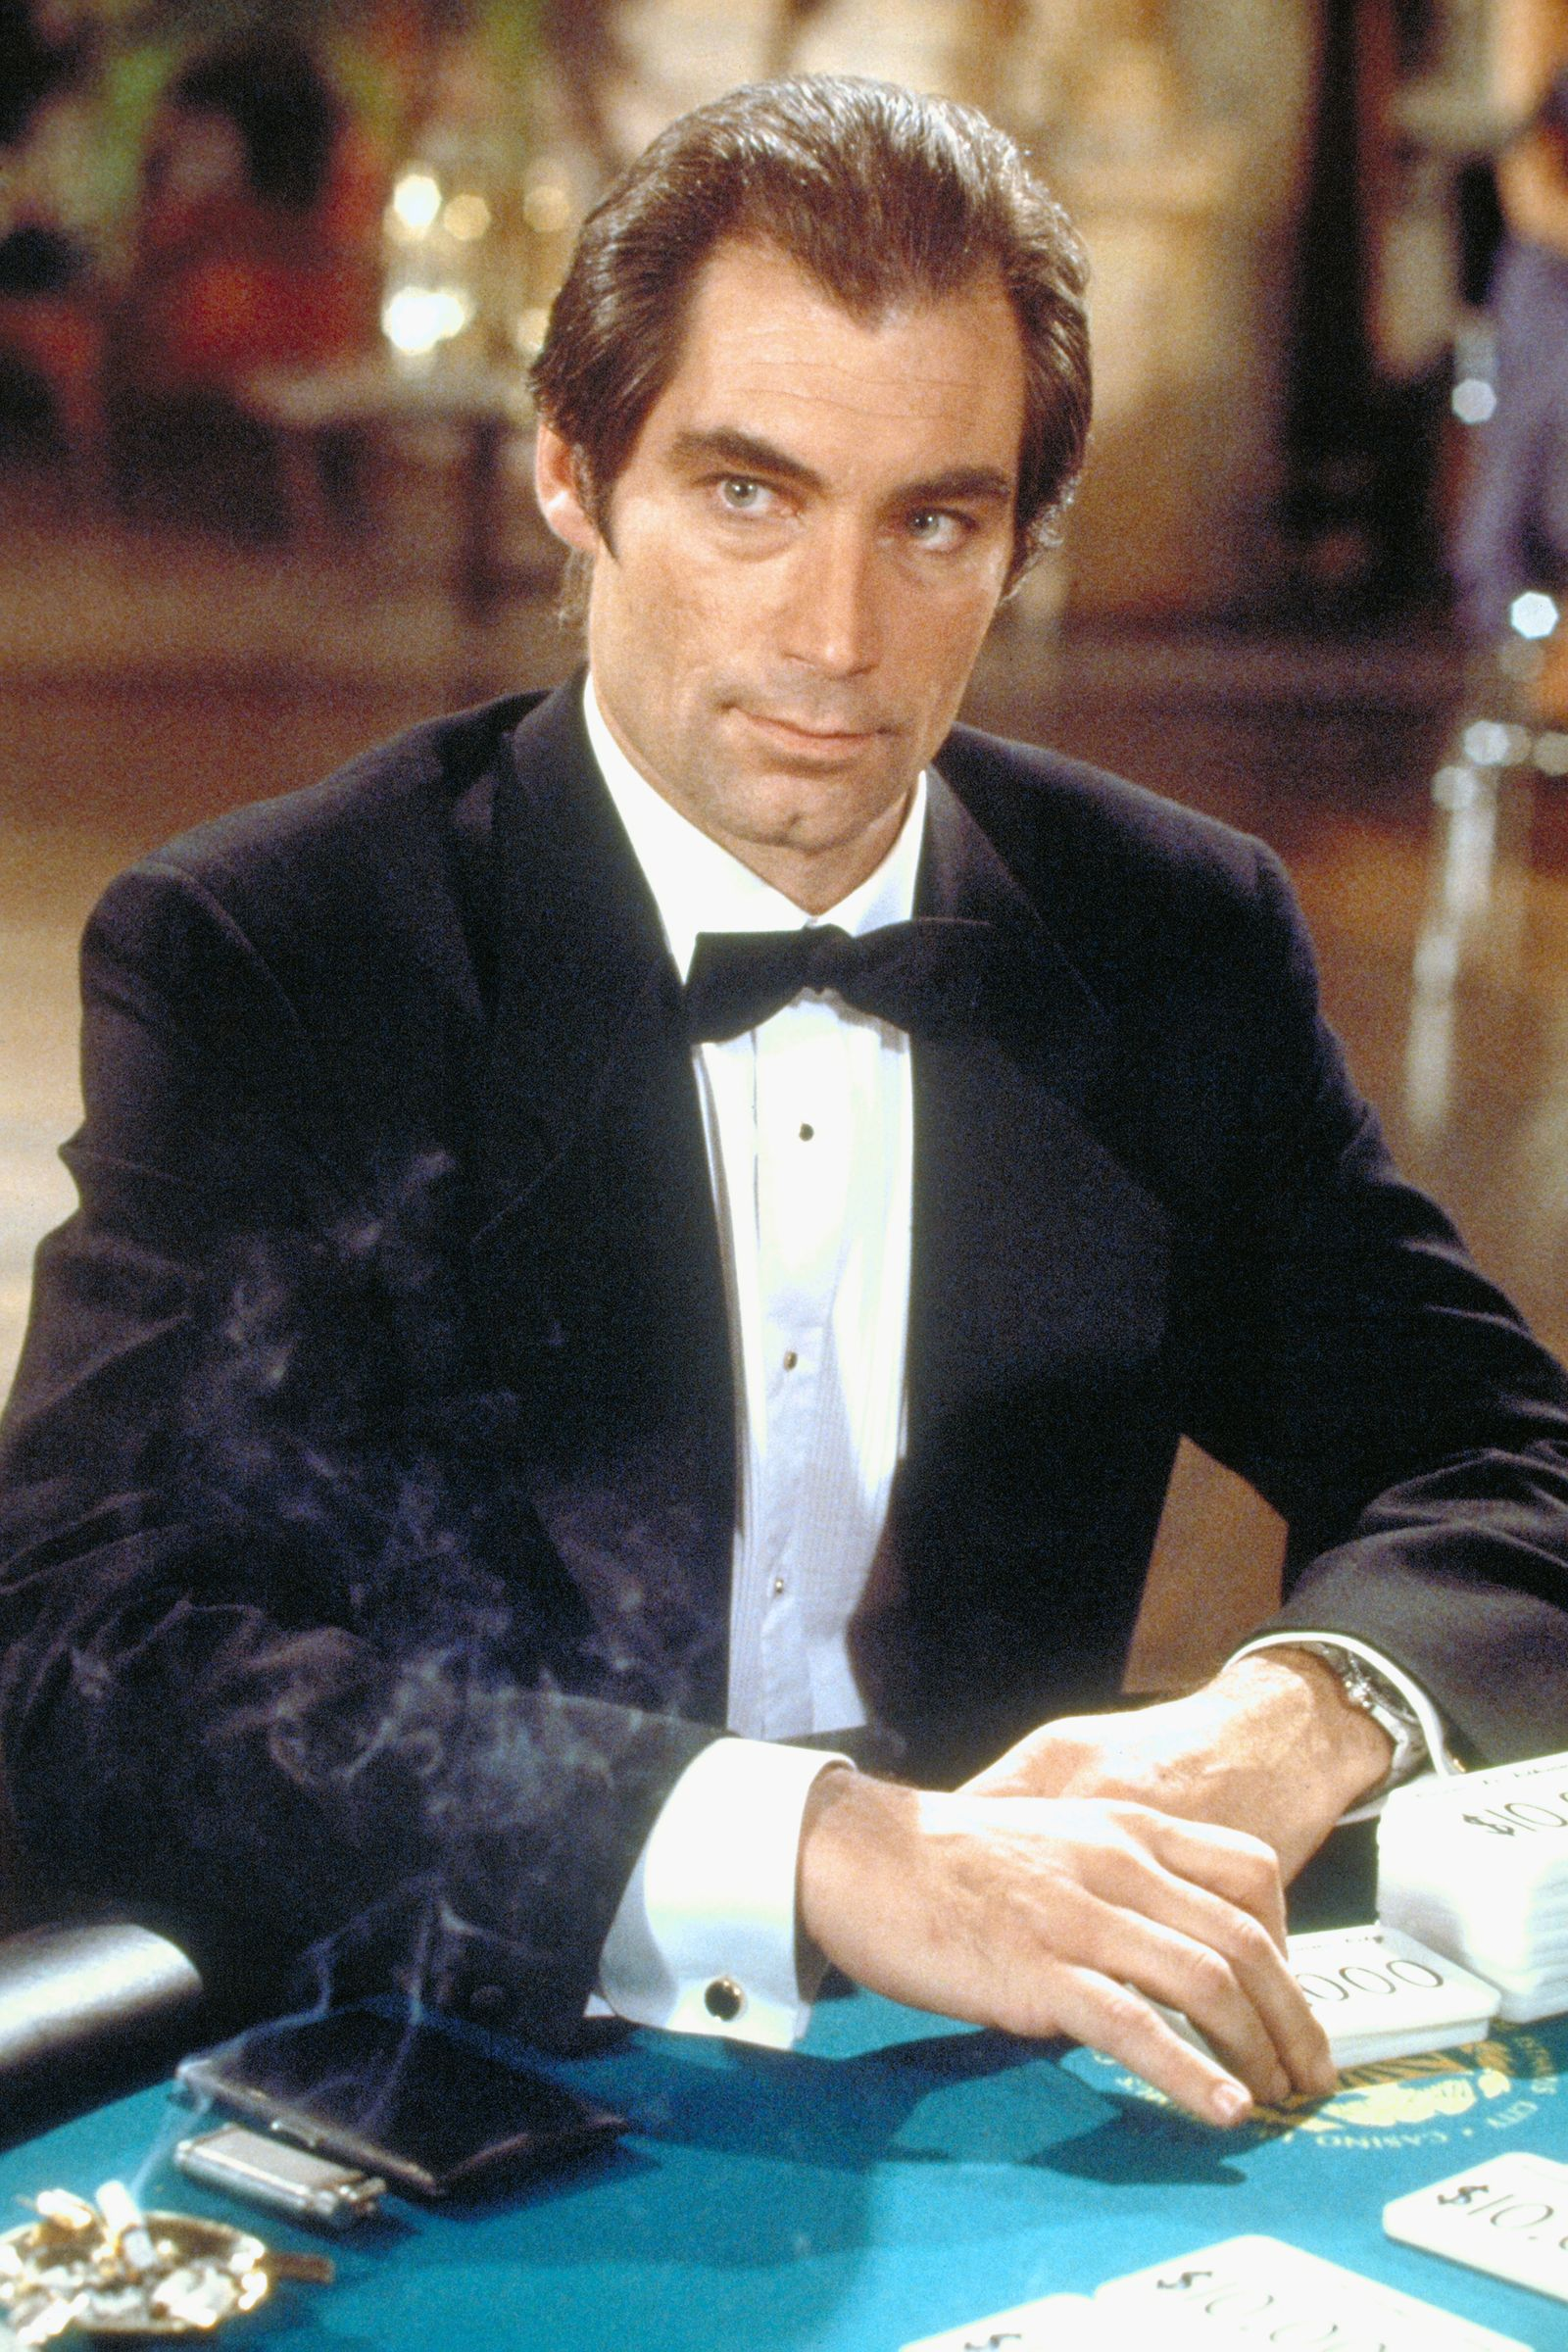 On the set of Licence to Kill